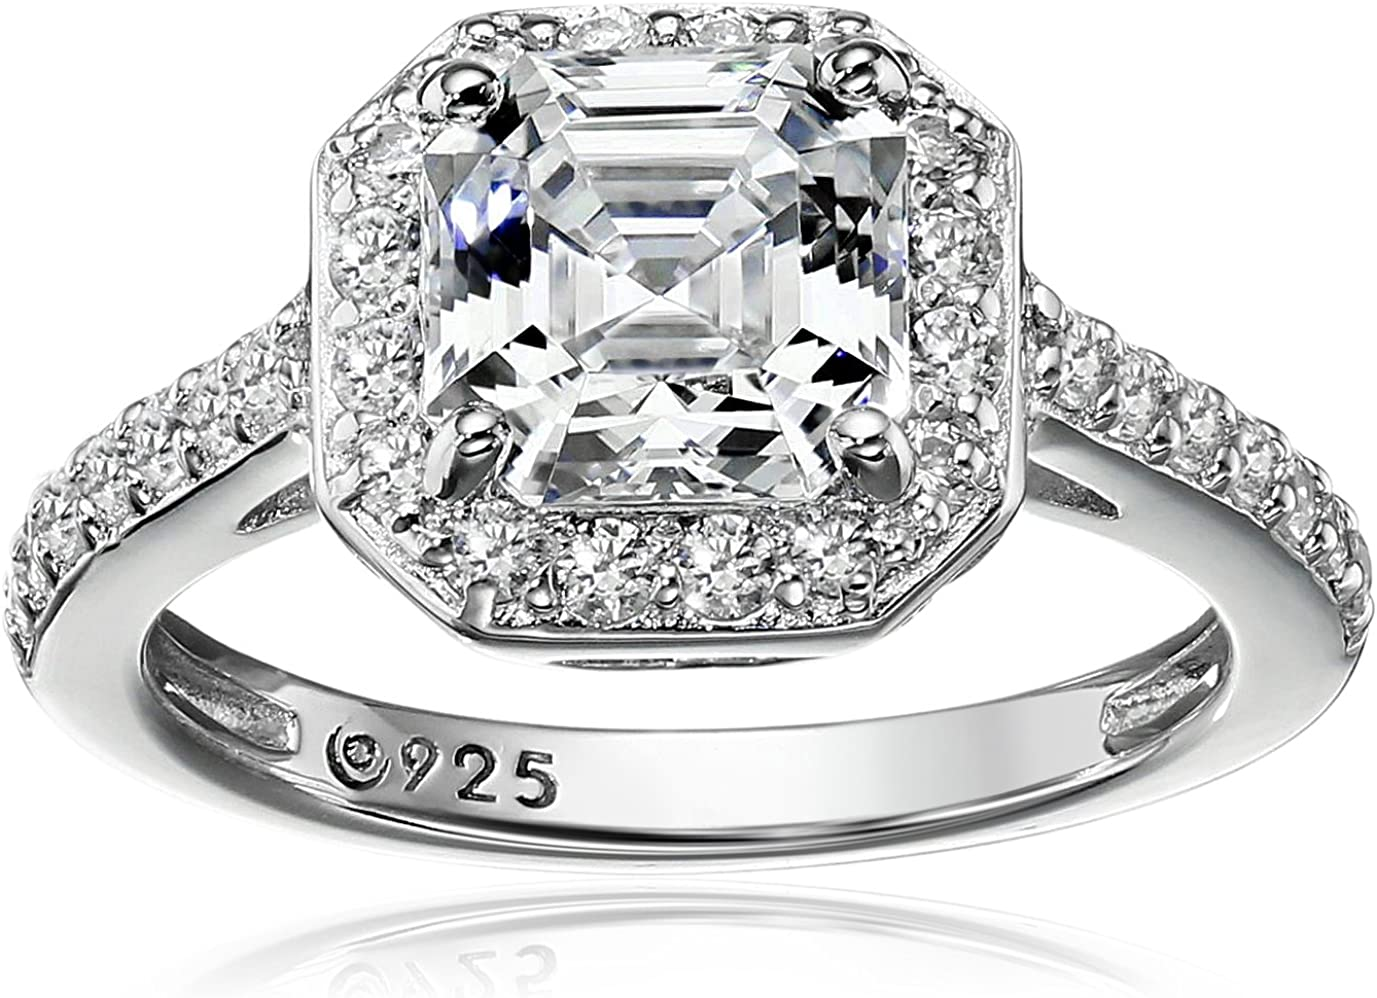 Platinum or Gold Plated Sterling Silver Asscher-Cut Halo Ring Set with Swarovski Zirconia